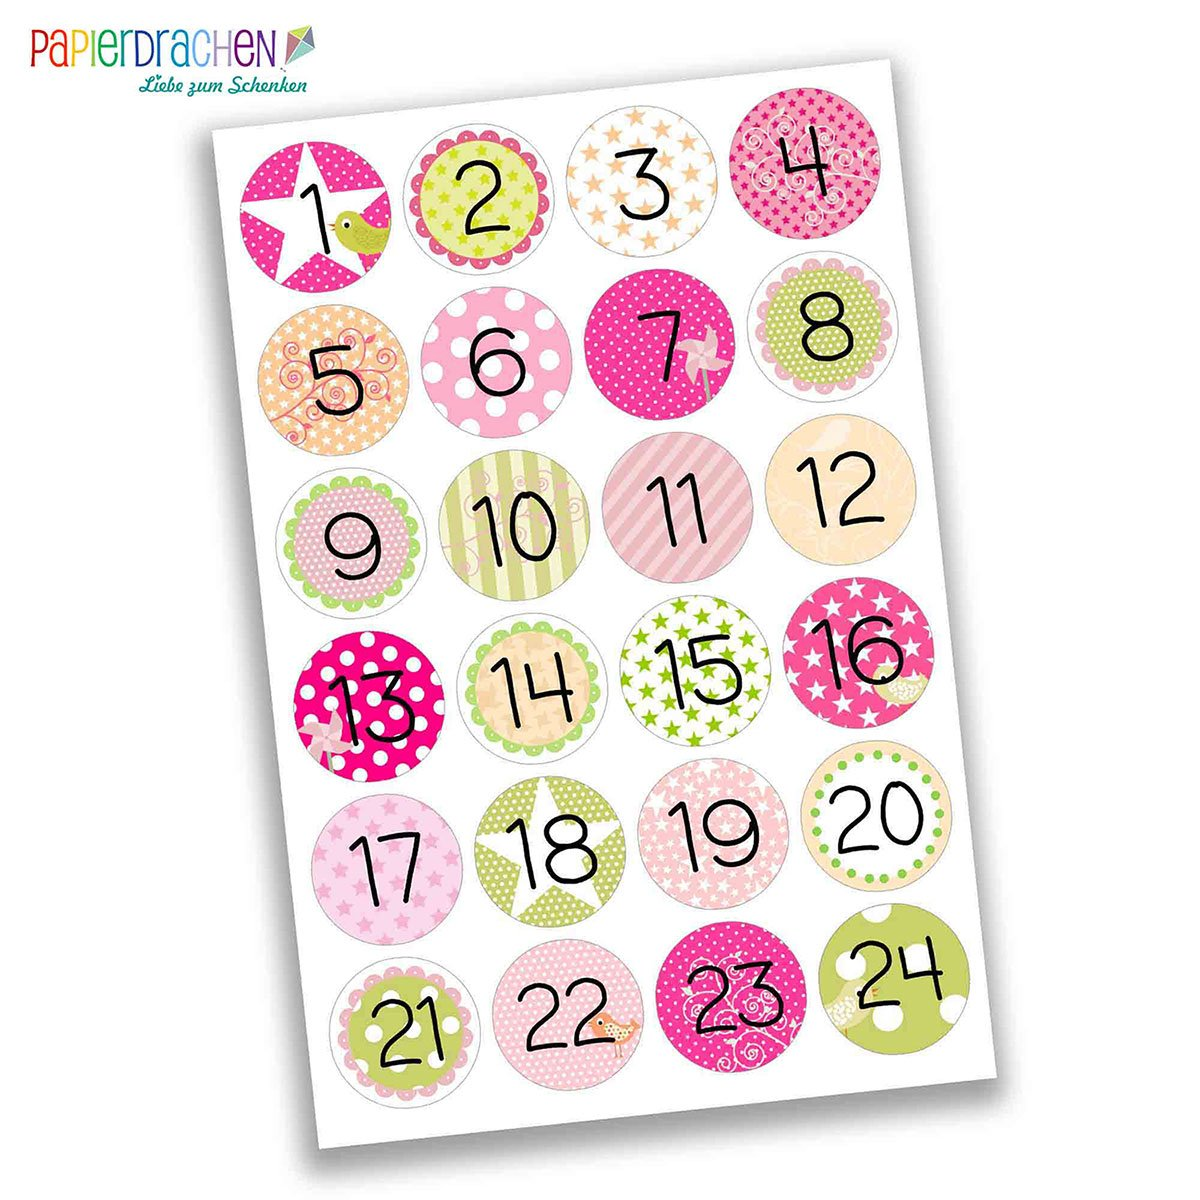 Papierdrachen 24 Advent Calendar Number Stickers - DIY Labels - for Making and Filling - No 16